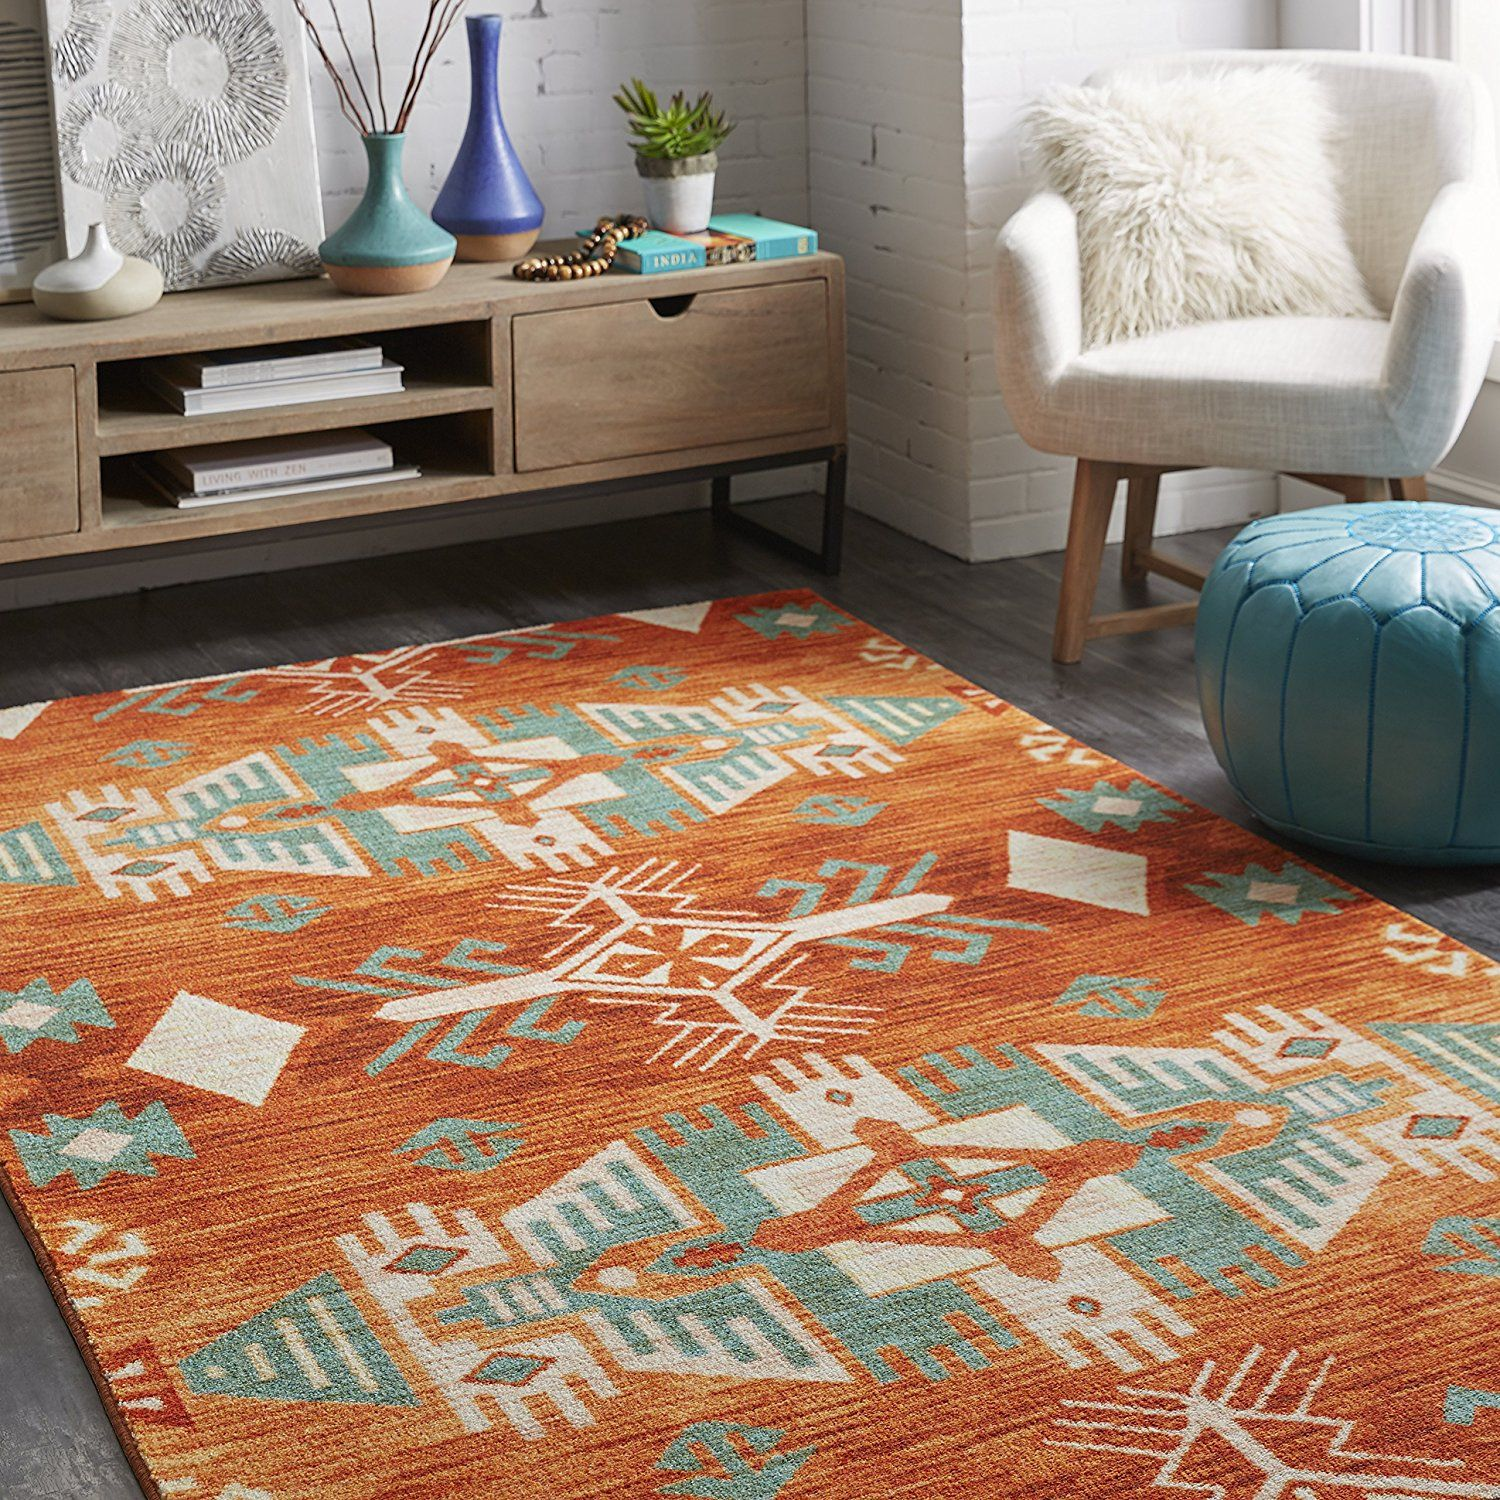 Mohawk Home S Eidenau Sunset Aztec Rug Brings Boho To Your Home